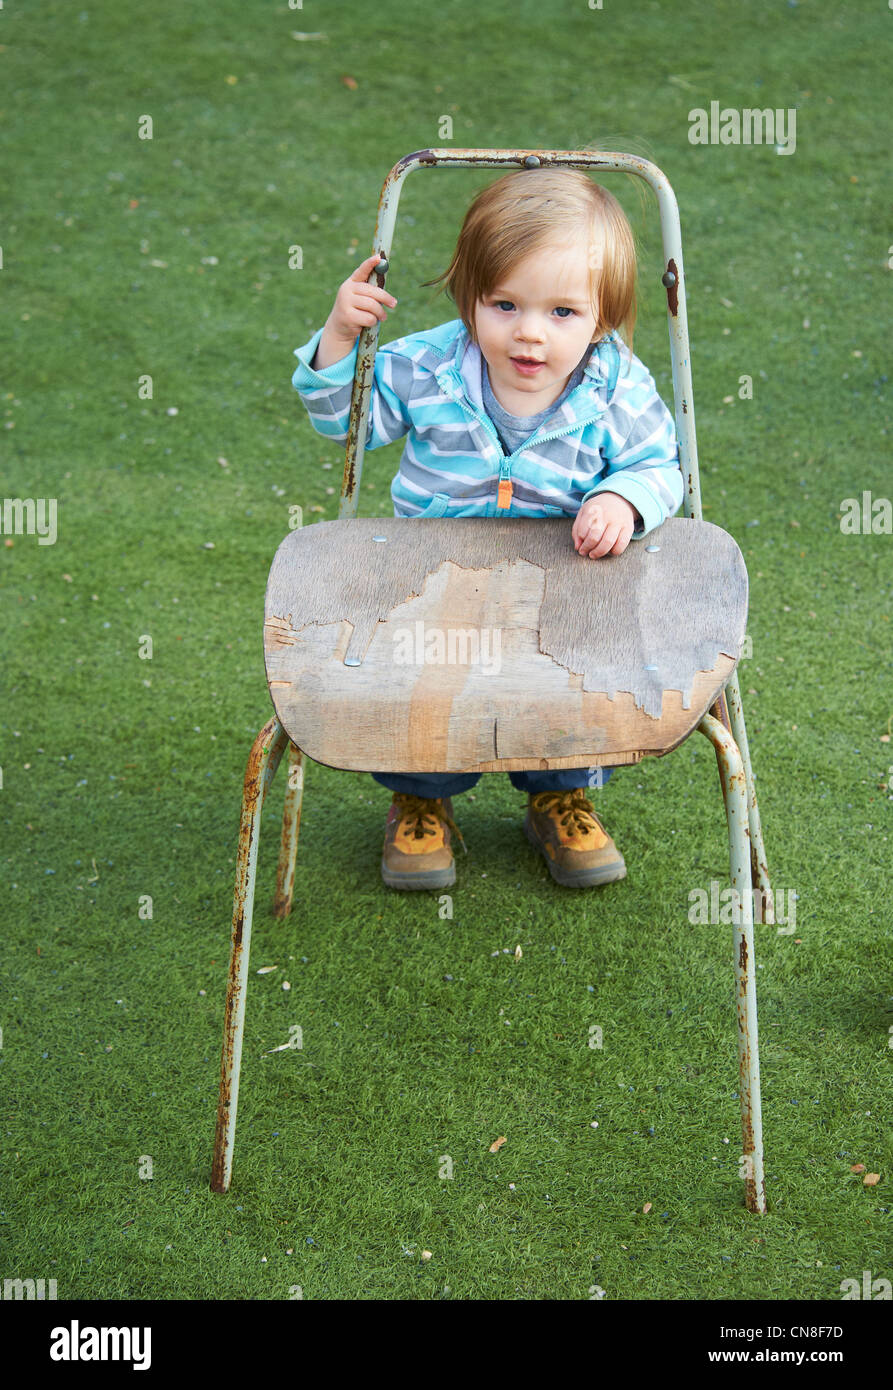 Baby child girl standing with old chair in green grass field - Stock Image